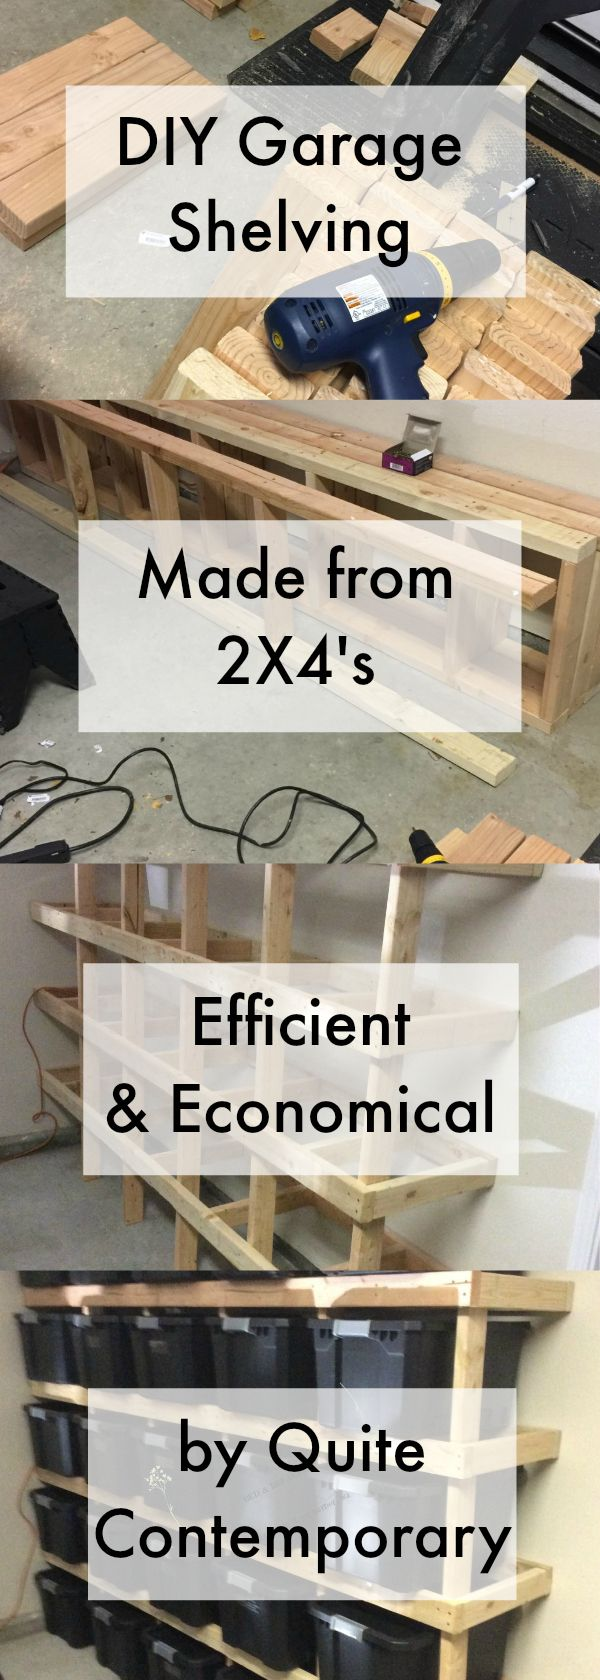 Diy phoenix home services inc inexpensive and economical garage organization designed on a three point system very easy to build with little to no waste and extremely strong easy diy solutioingenieria Choice Image